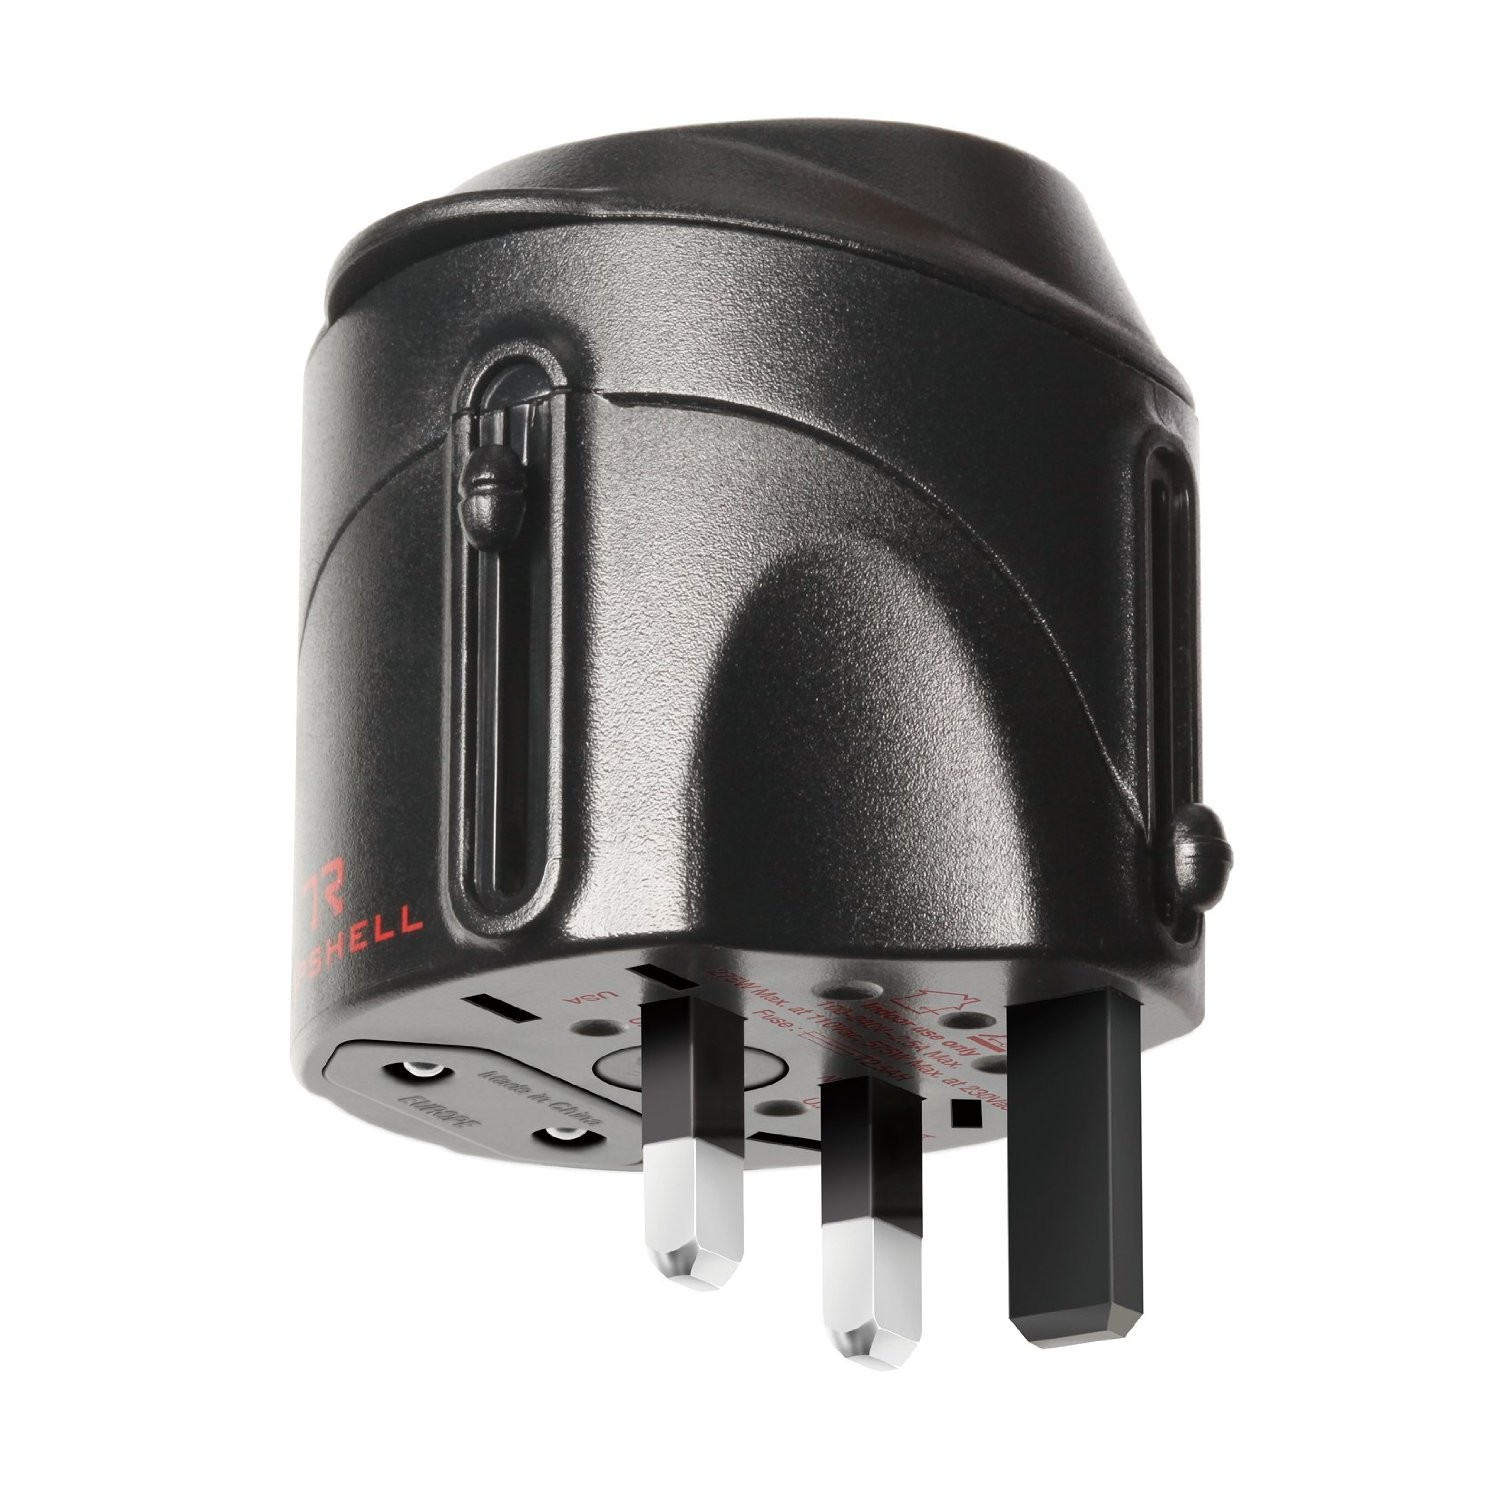 Tripshell International Travel Plug Adapter With Surge Protection, TRIPSHELL